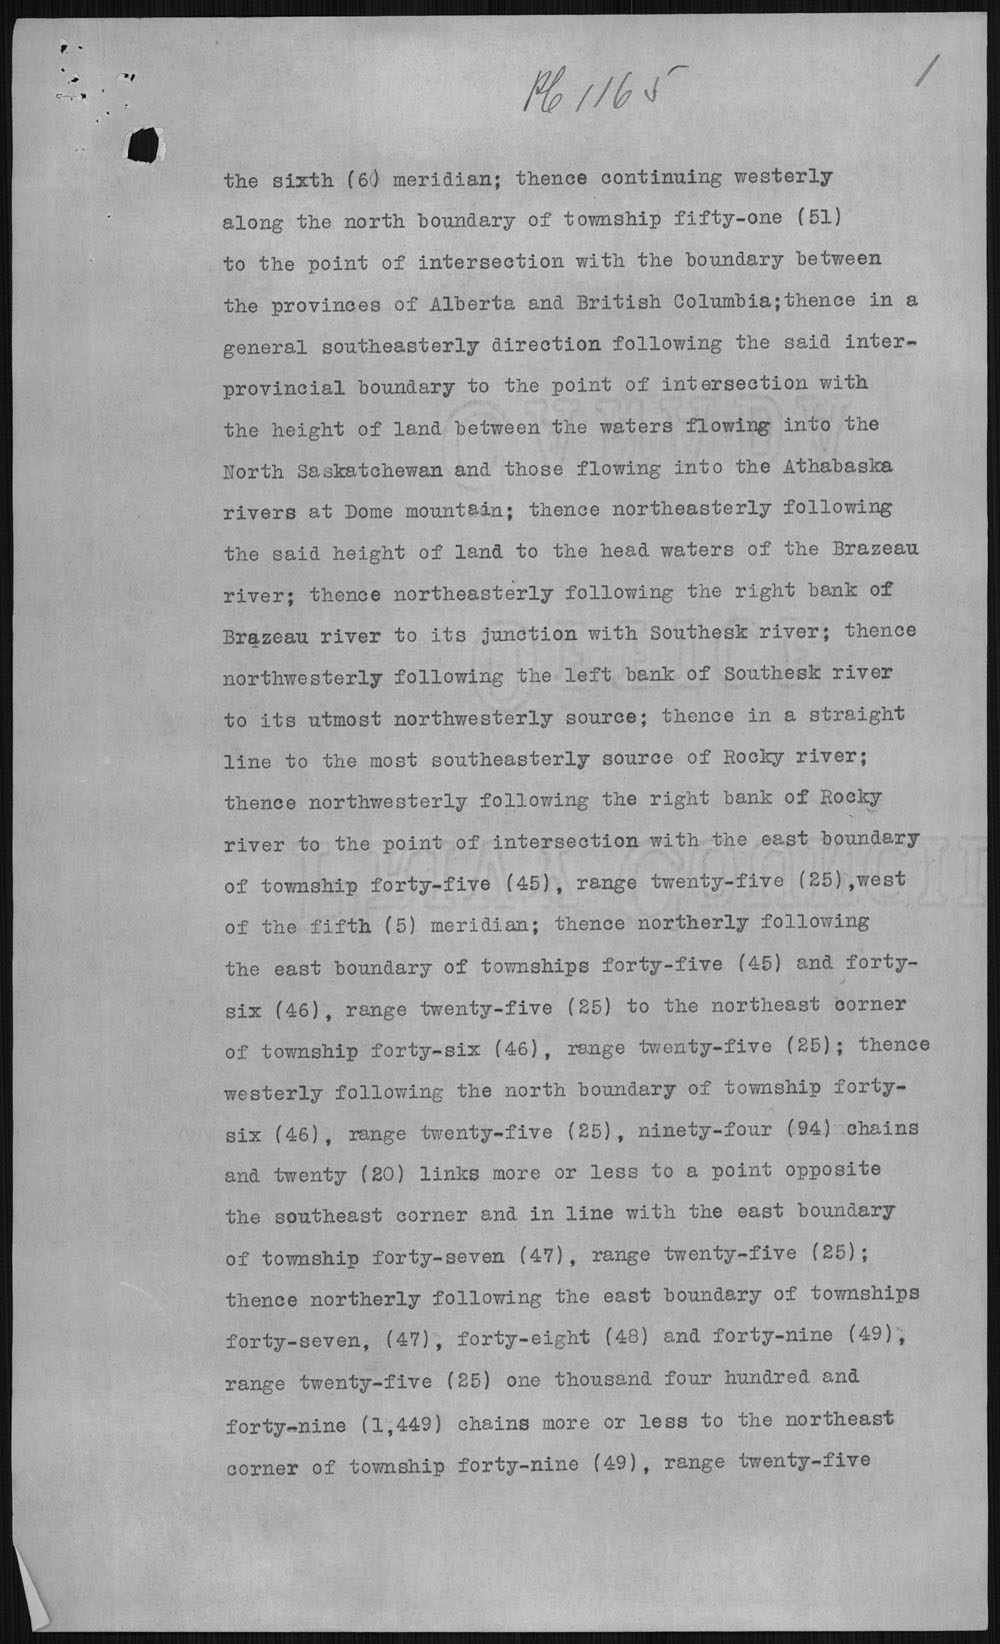 Digitized page of Orders in Council for Image No.: e010877239-v8